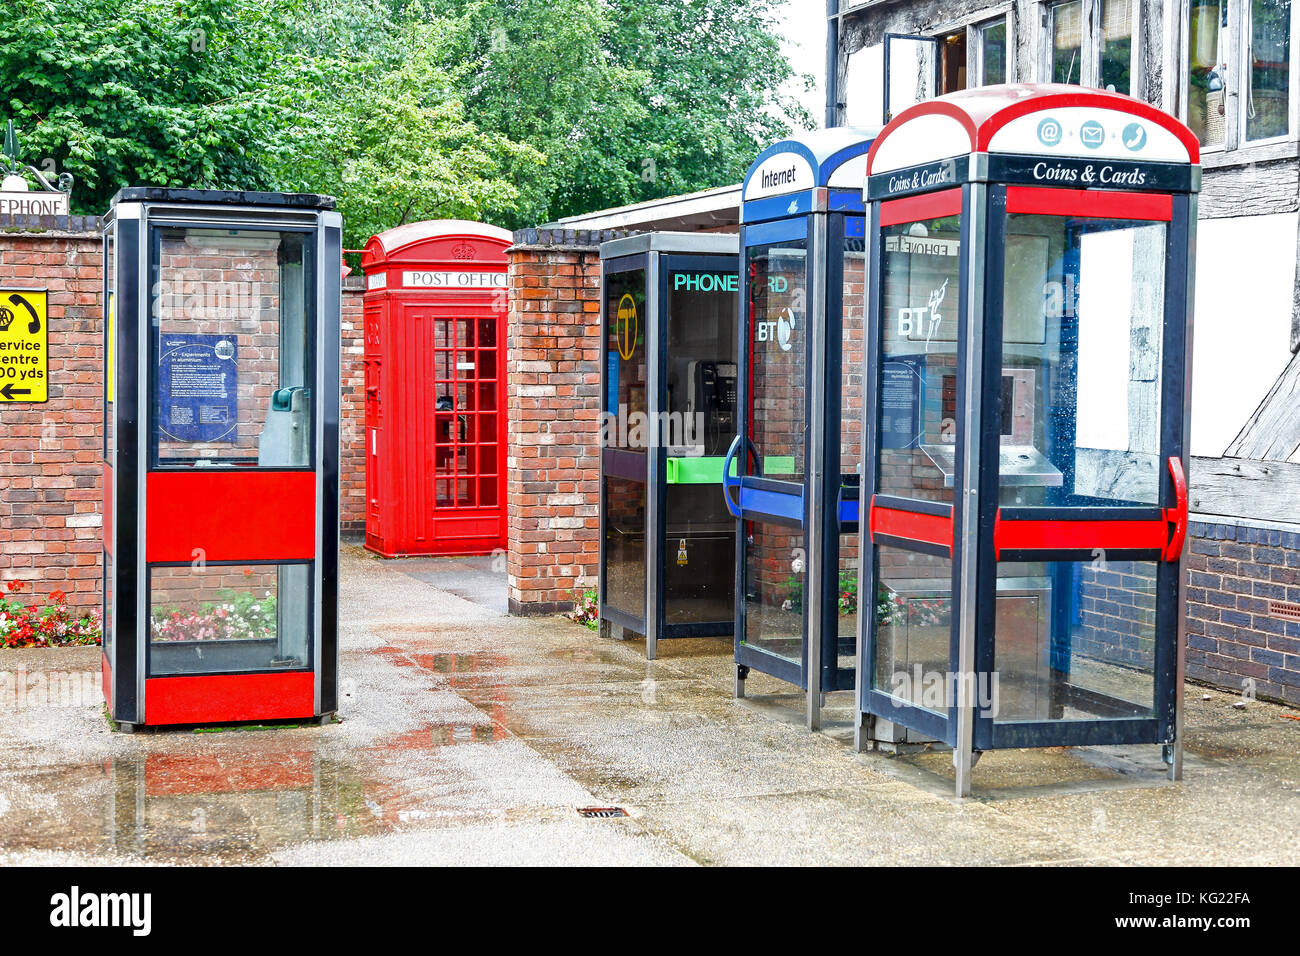 The National Telephone Kiosk Collection at the Avoncroft Museum of Buildings, Stoke Heath, Bromsgrove, Worcestershire, - Stock Image